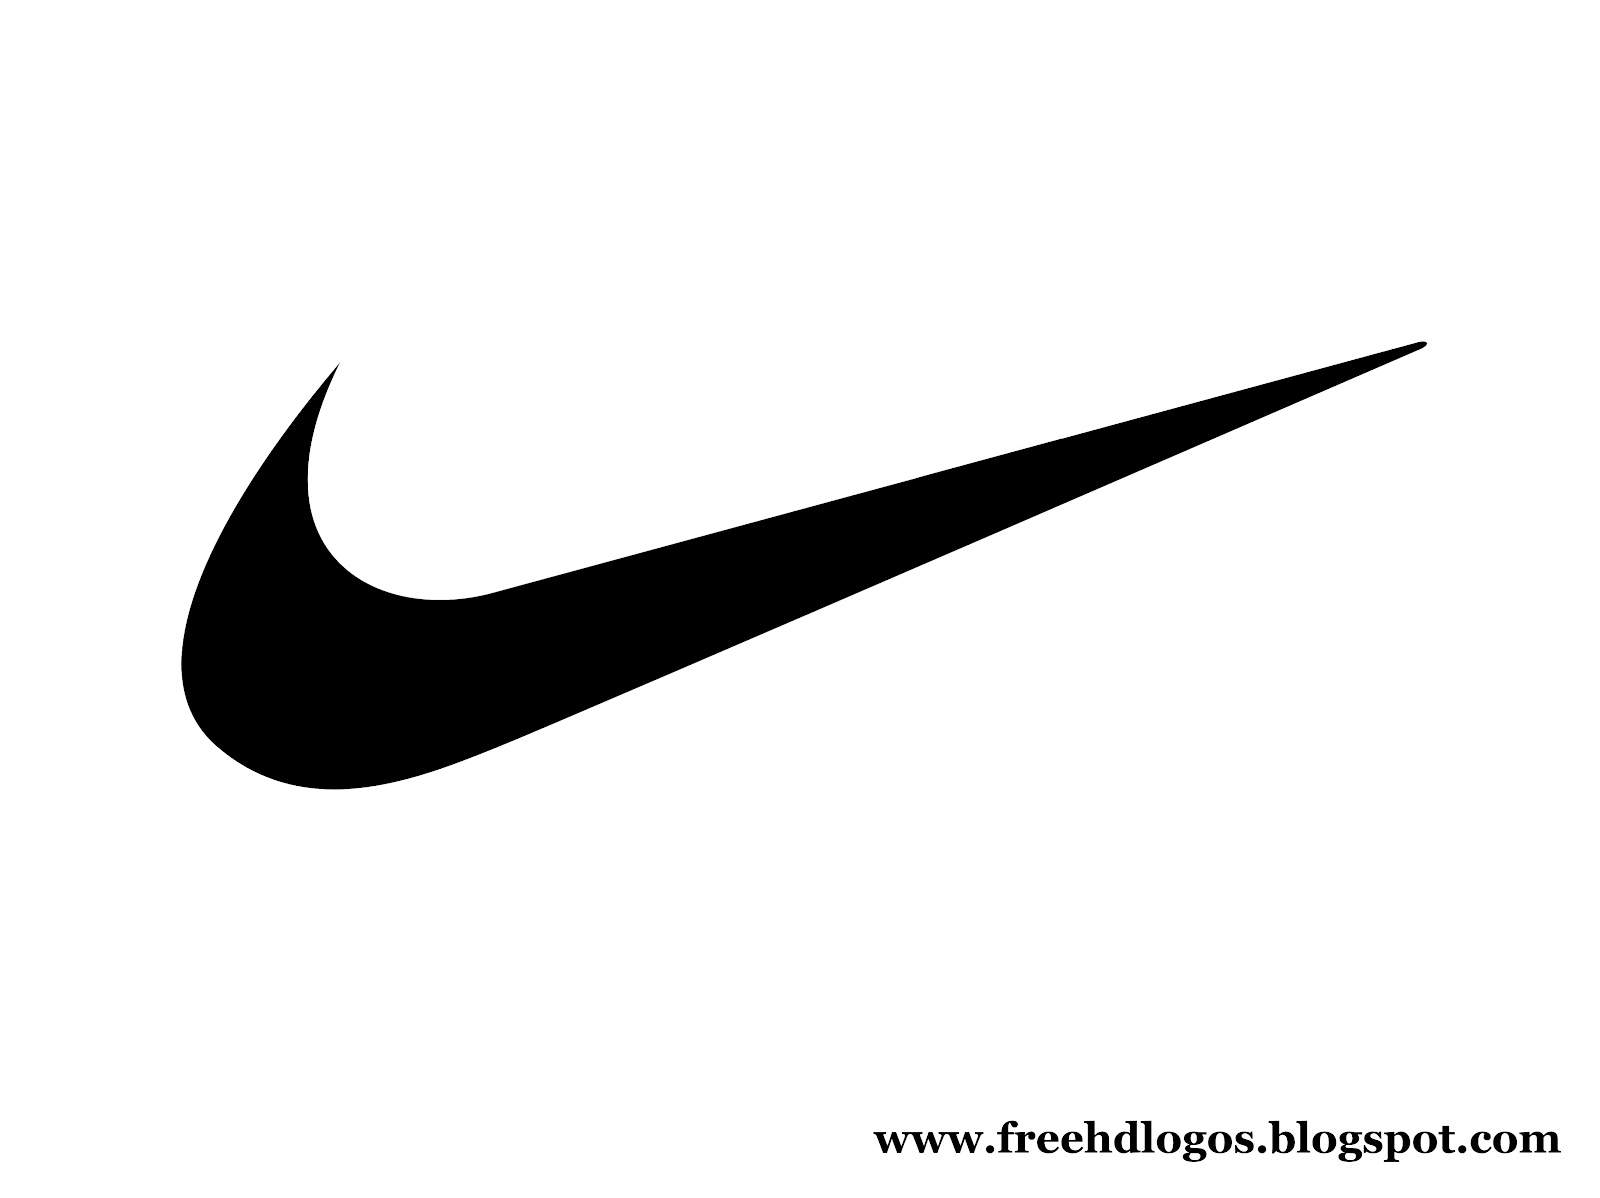 nike brand logo on white background #13